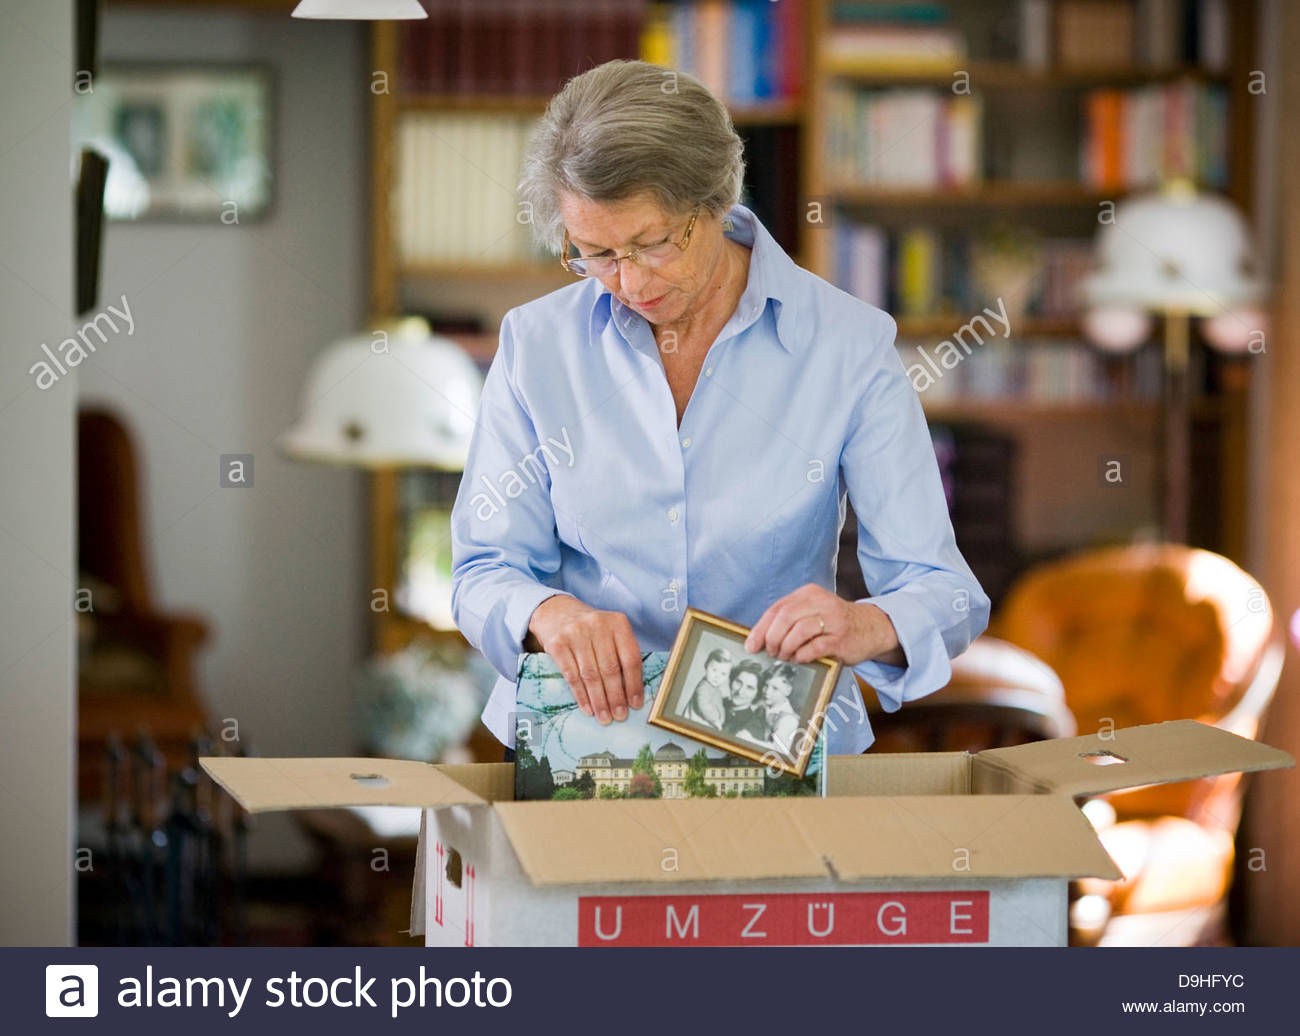 Senior woman packing picture frame in a cardboard box - Stock Image